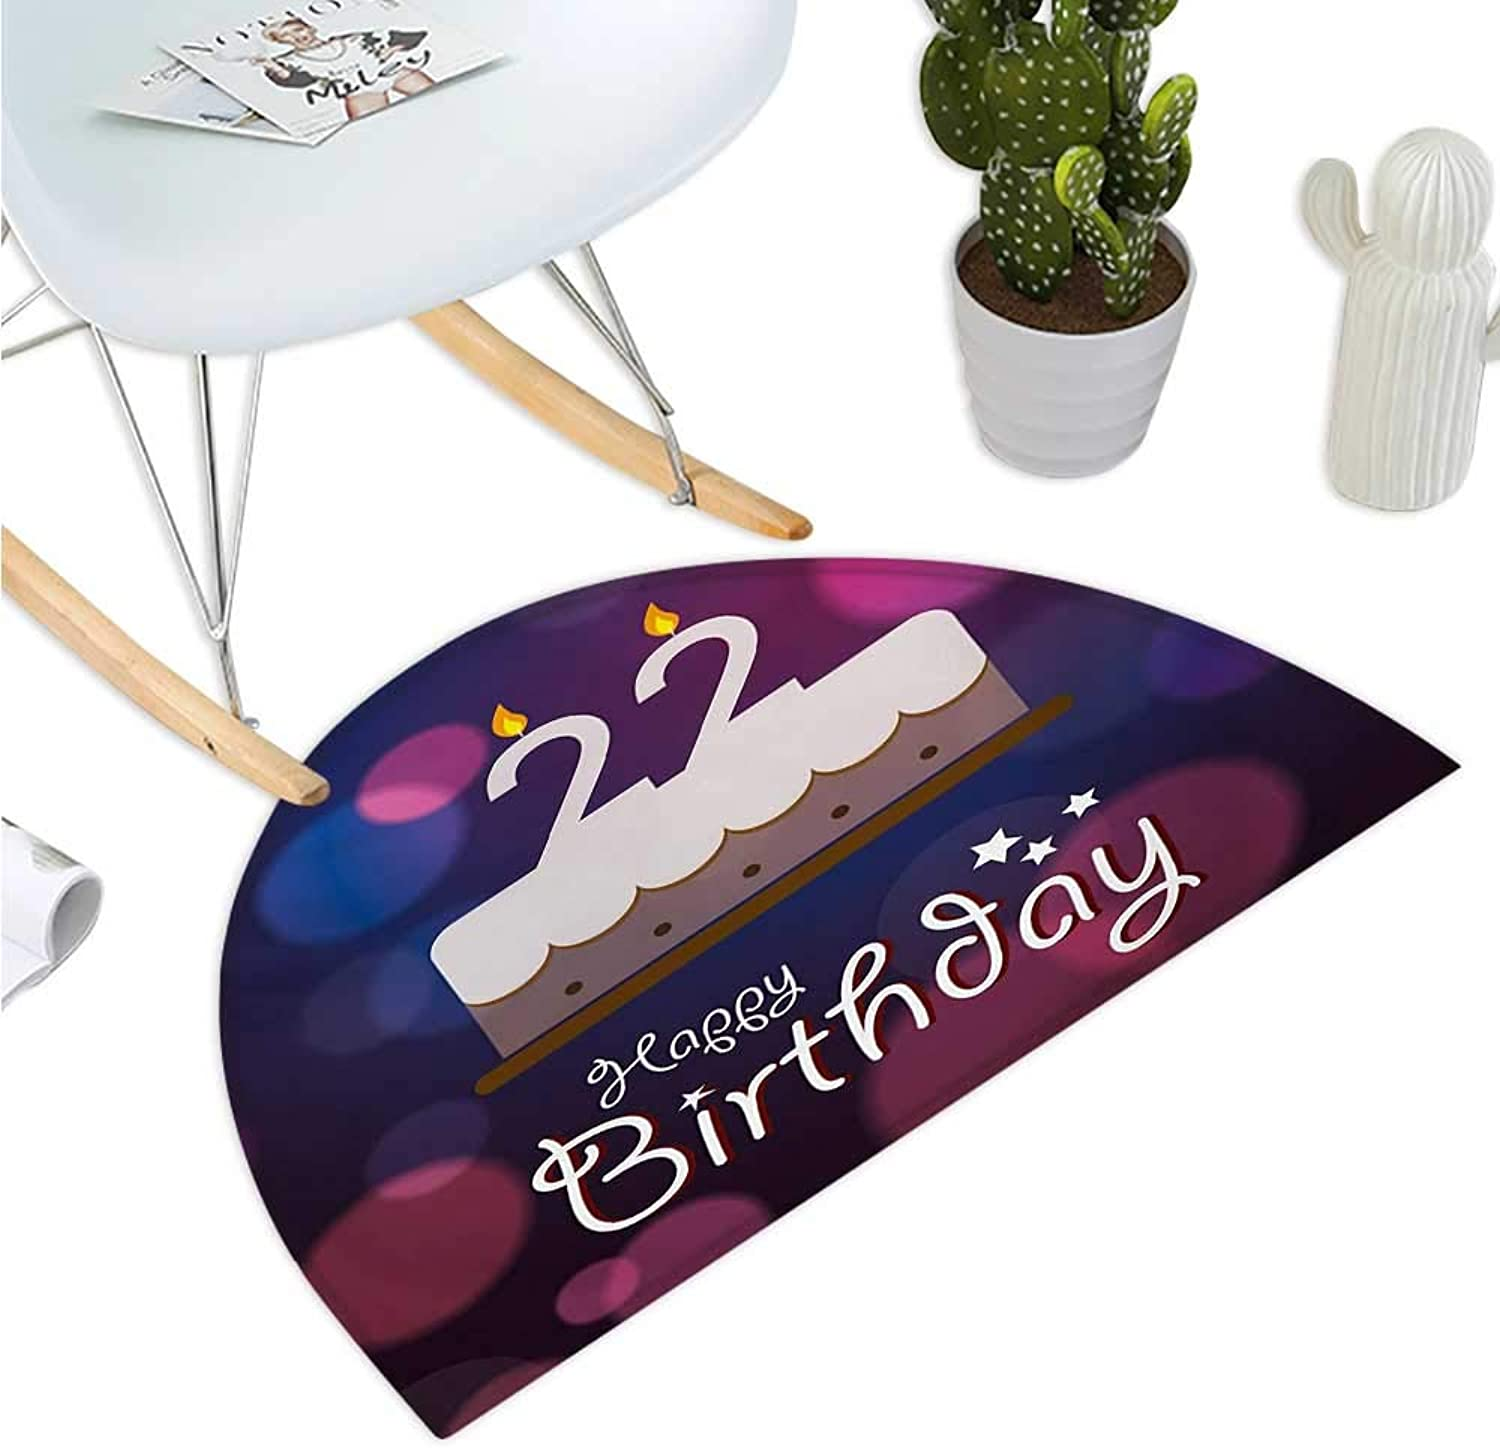 22nd Birthday Semicircular Cushion Vibrant Greeting Bokeh Style Backdrop and Surprise Party Cake Image Bathroom Mat H 47.2  xD 70.8  Fuchsia Dark bluee